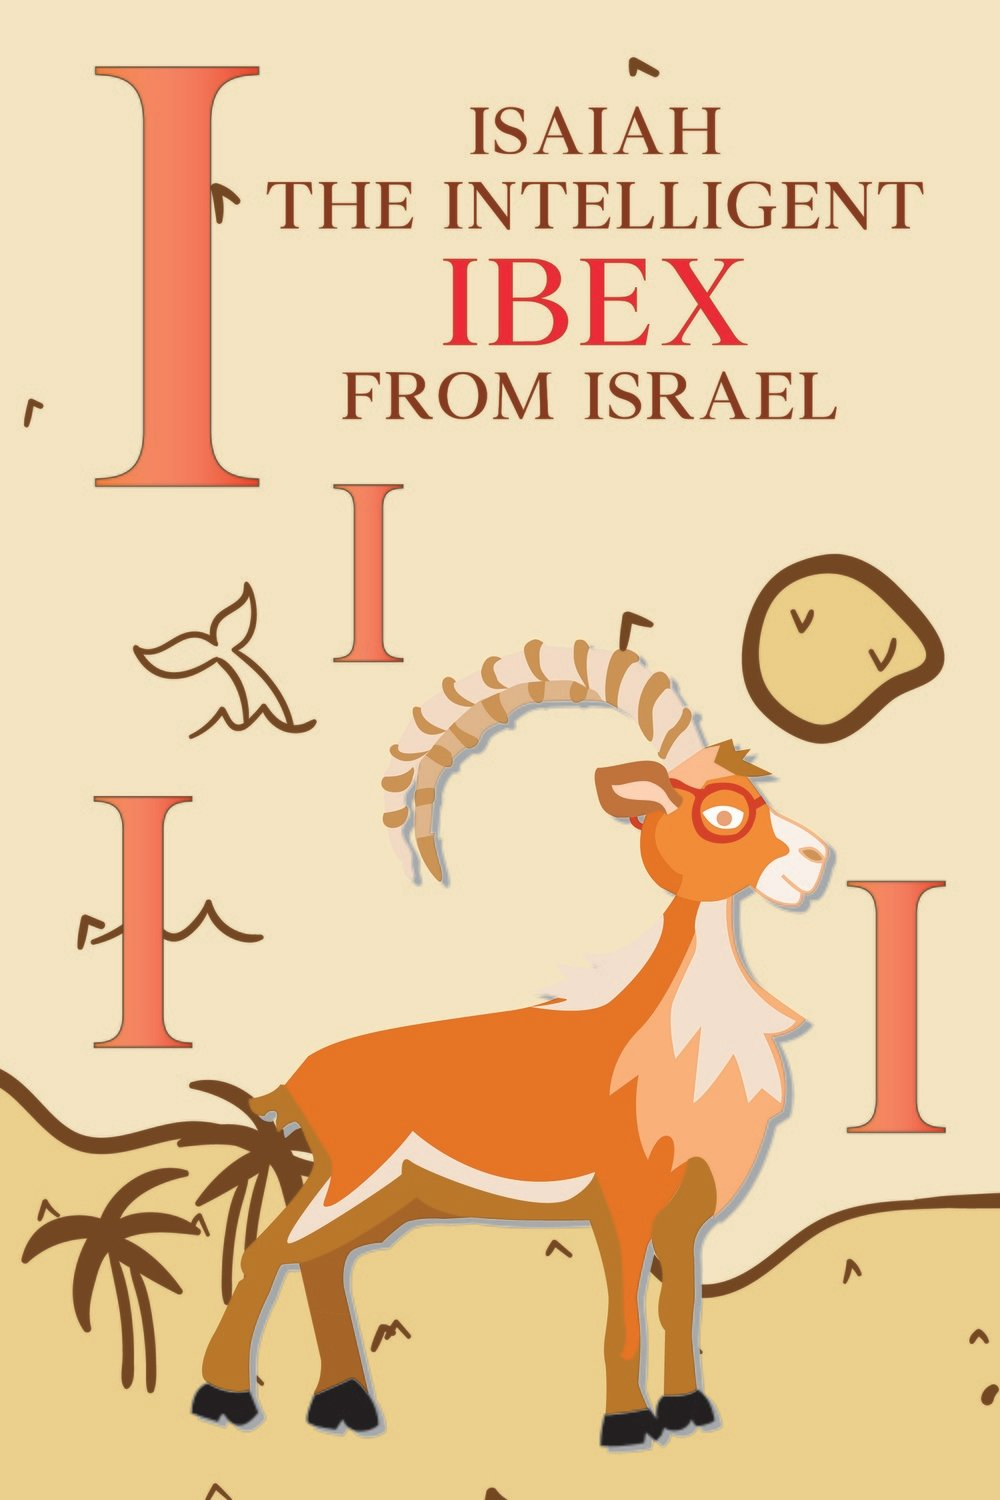 Isaiah The Intelligent IBEX From ISRAEL Poster